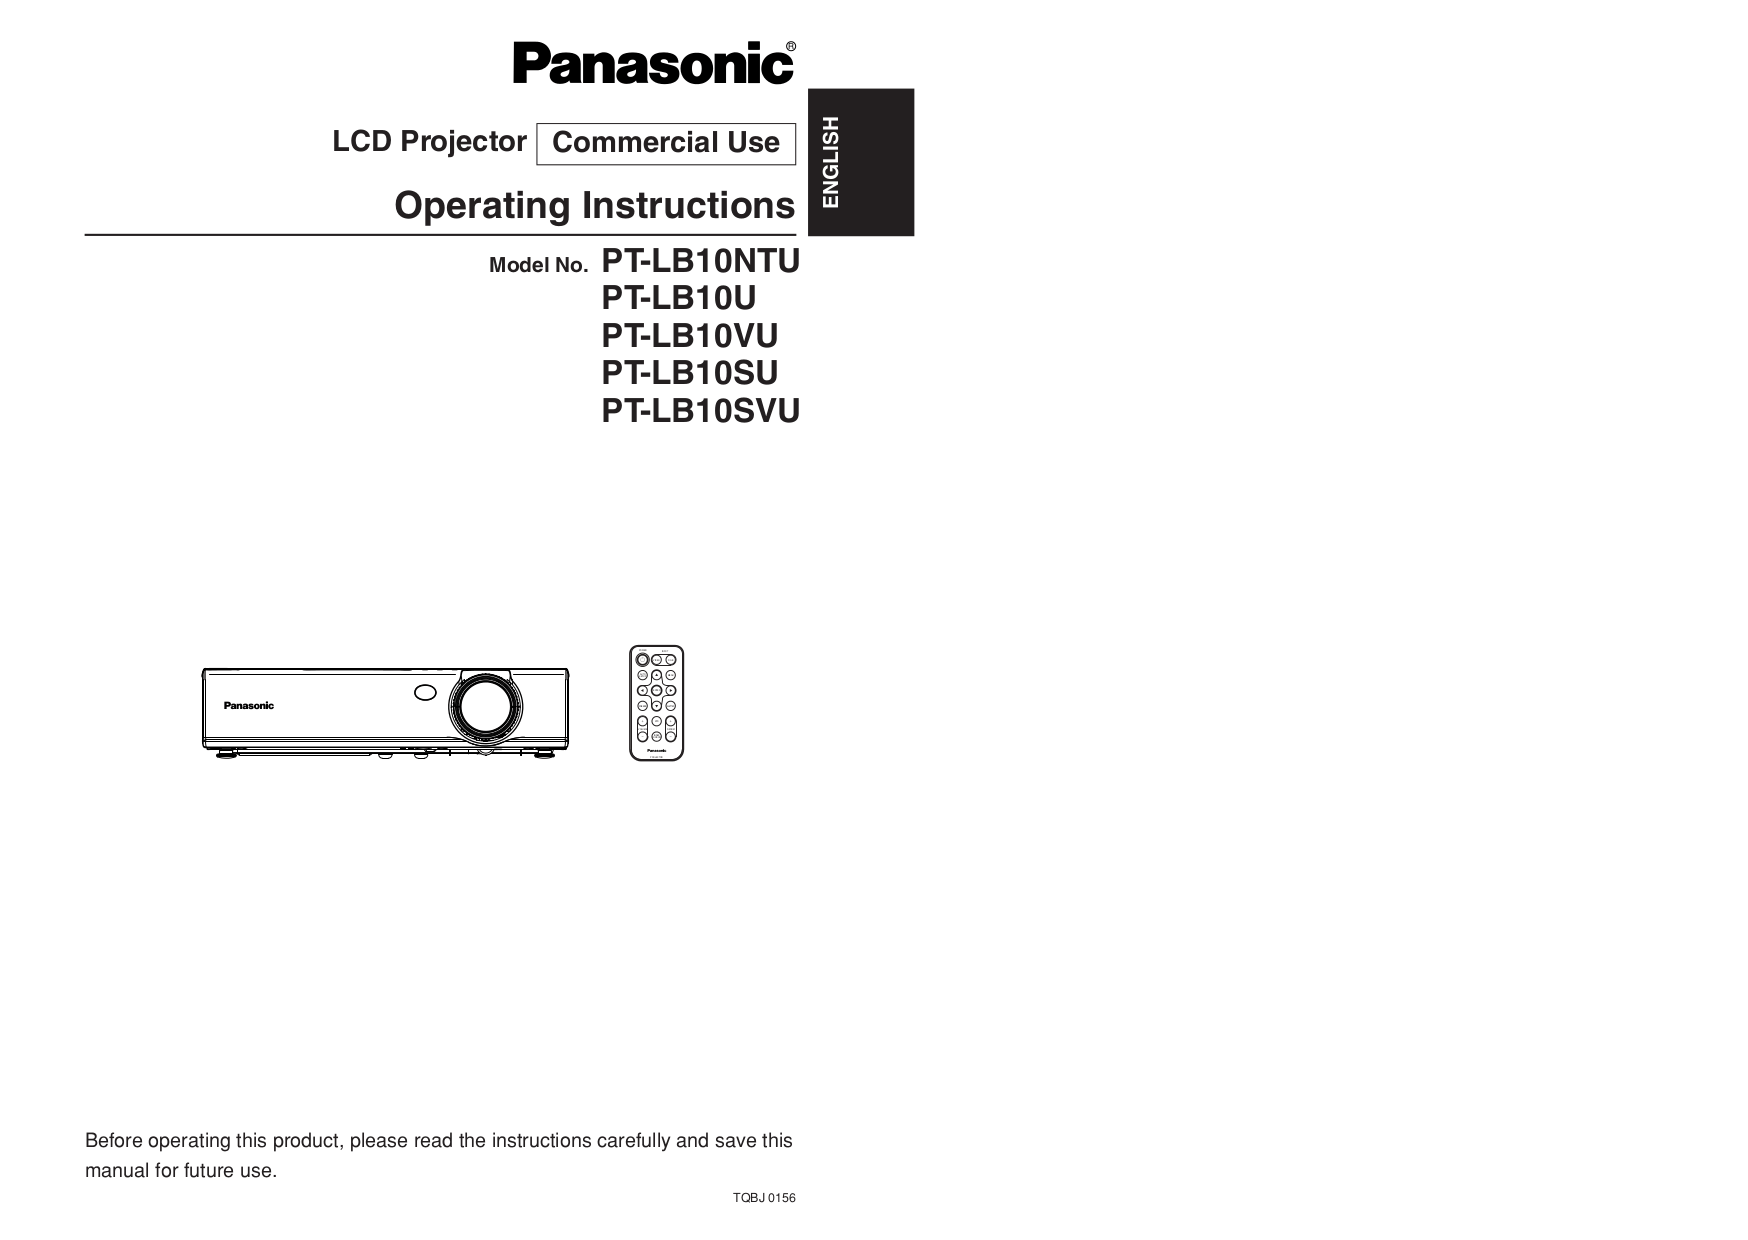 Download free pdf for Panasonic PT-LB10SVU Projector manual